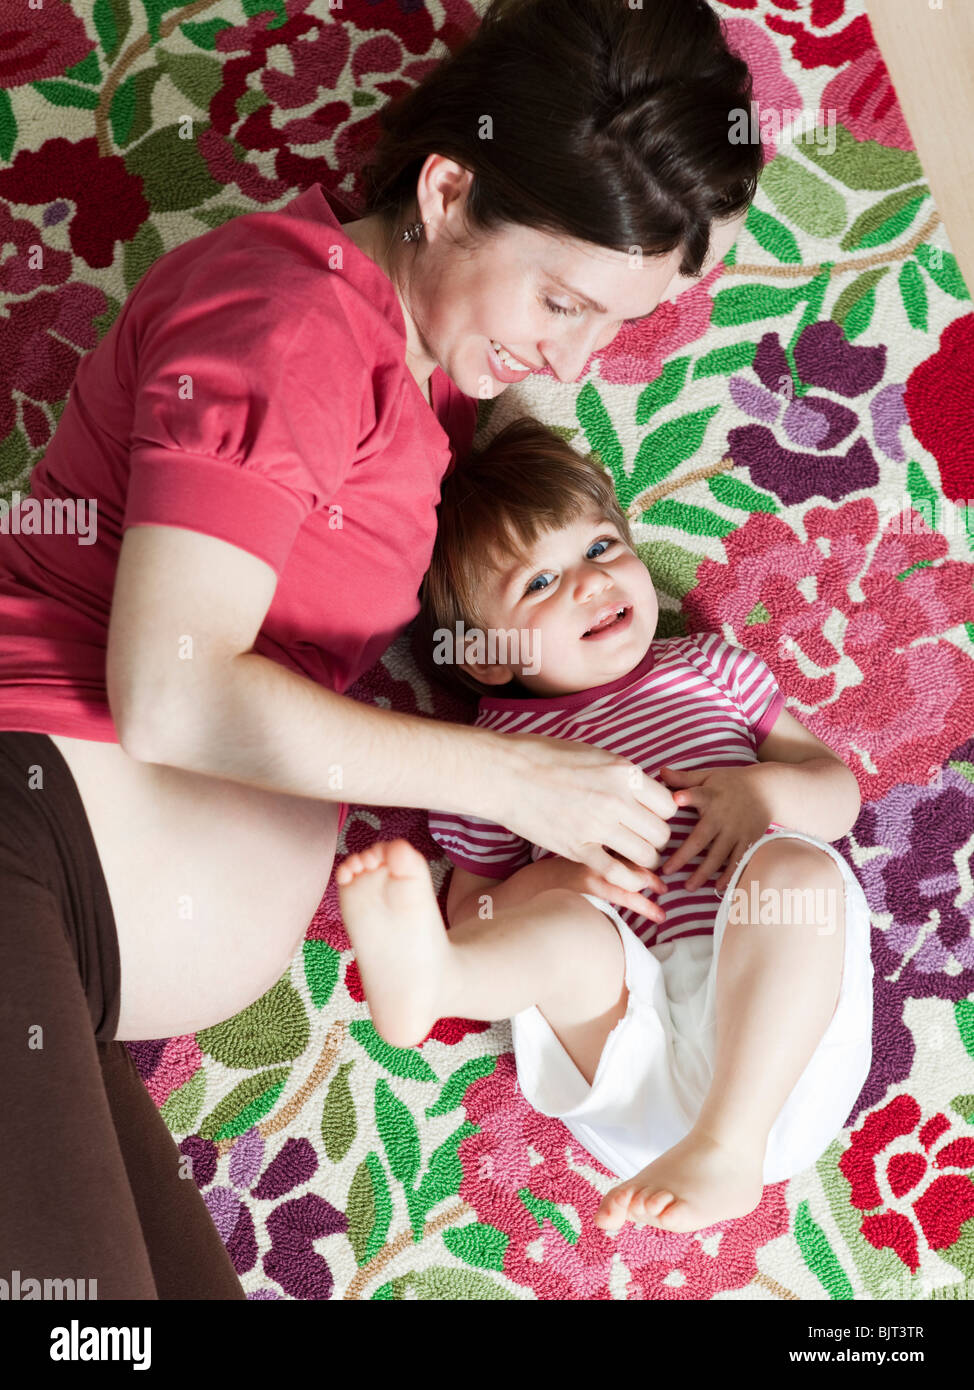 USA, California, San Francisco, mid adult pregnant mother with daughter (2-3) - Stock Image